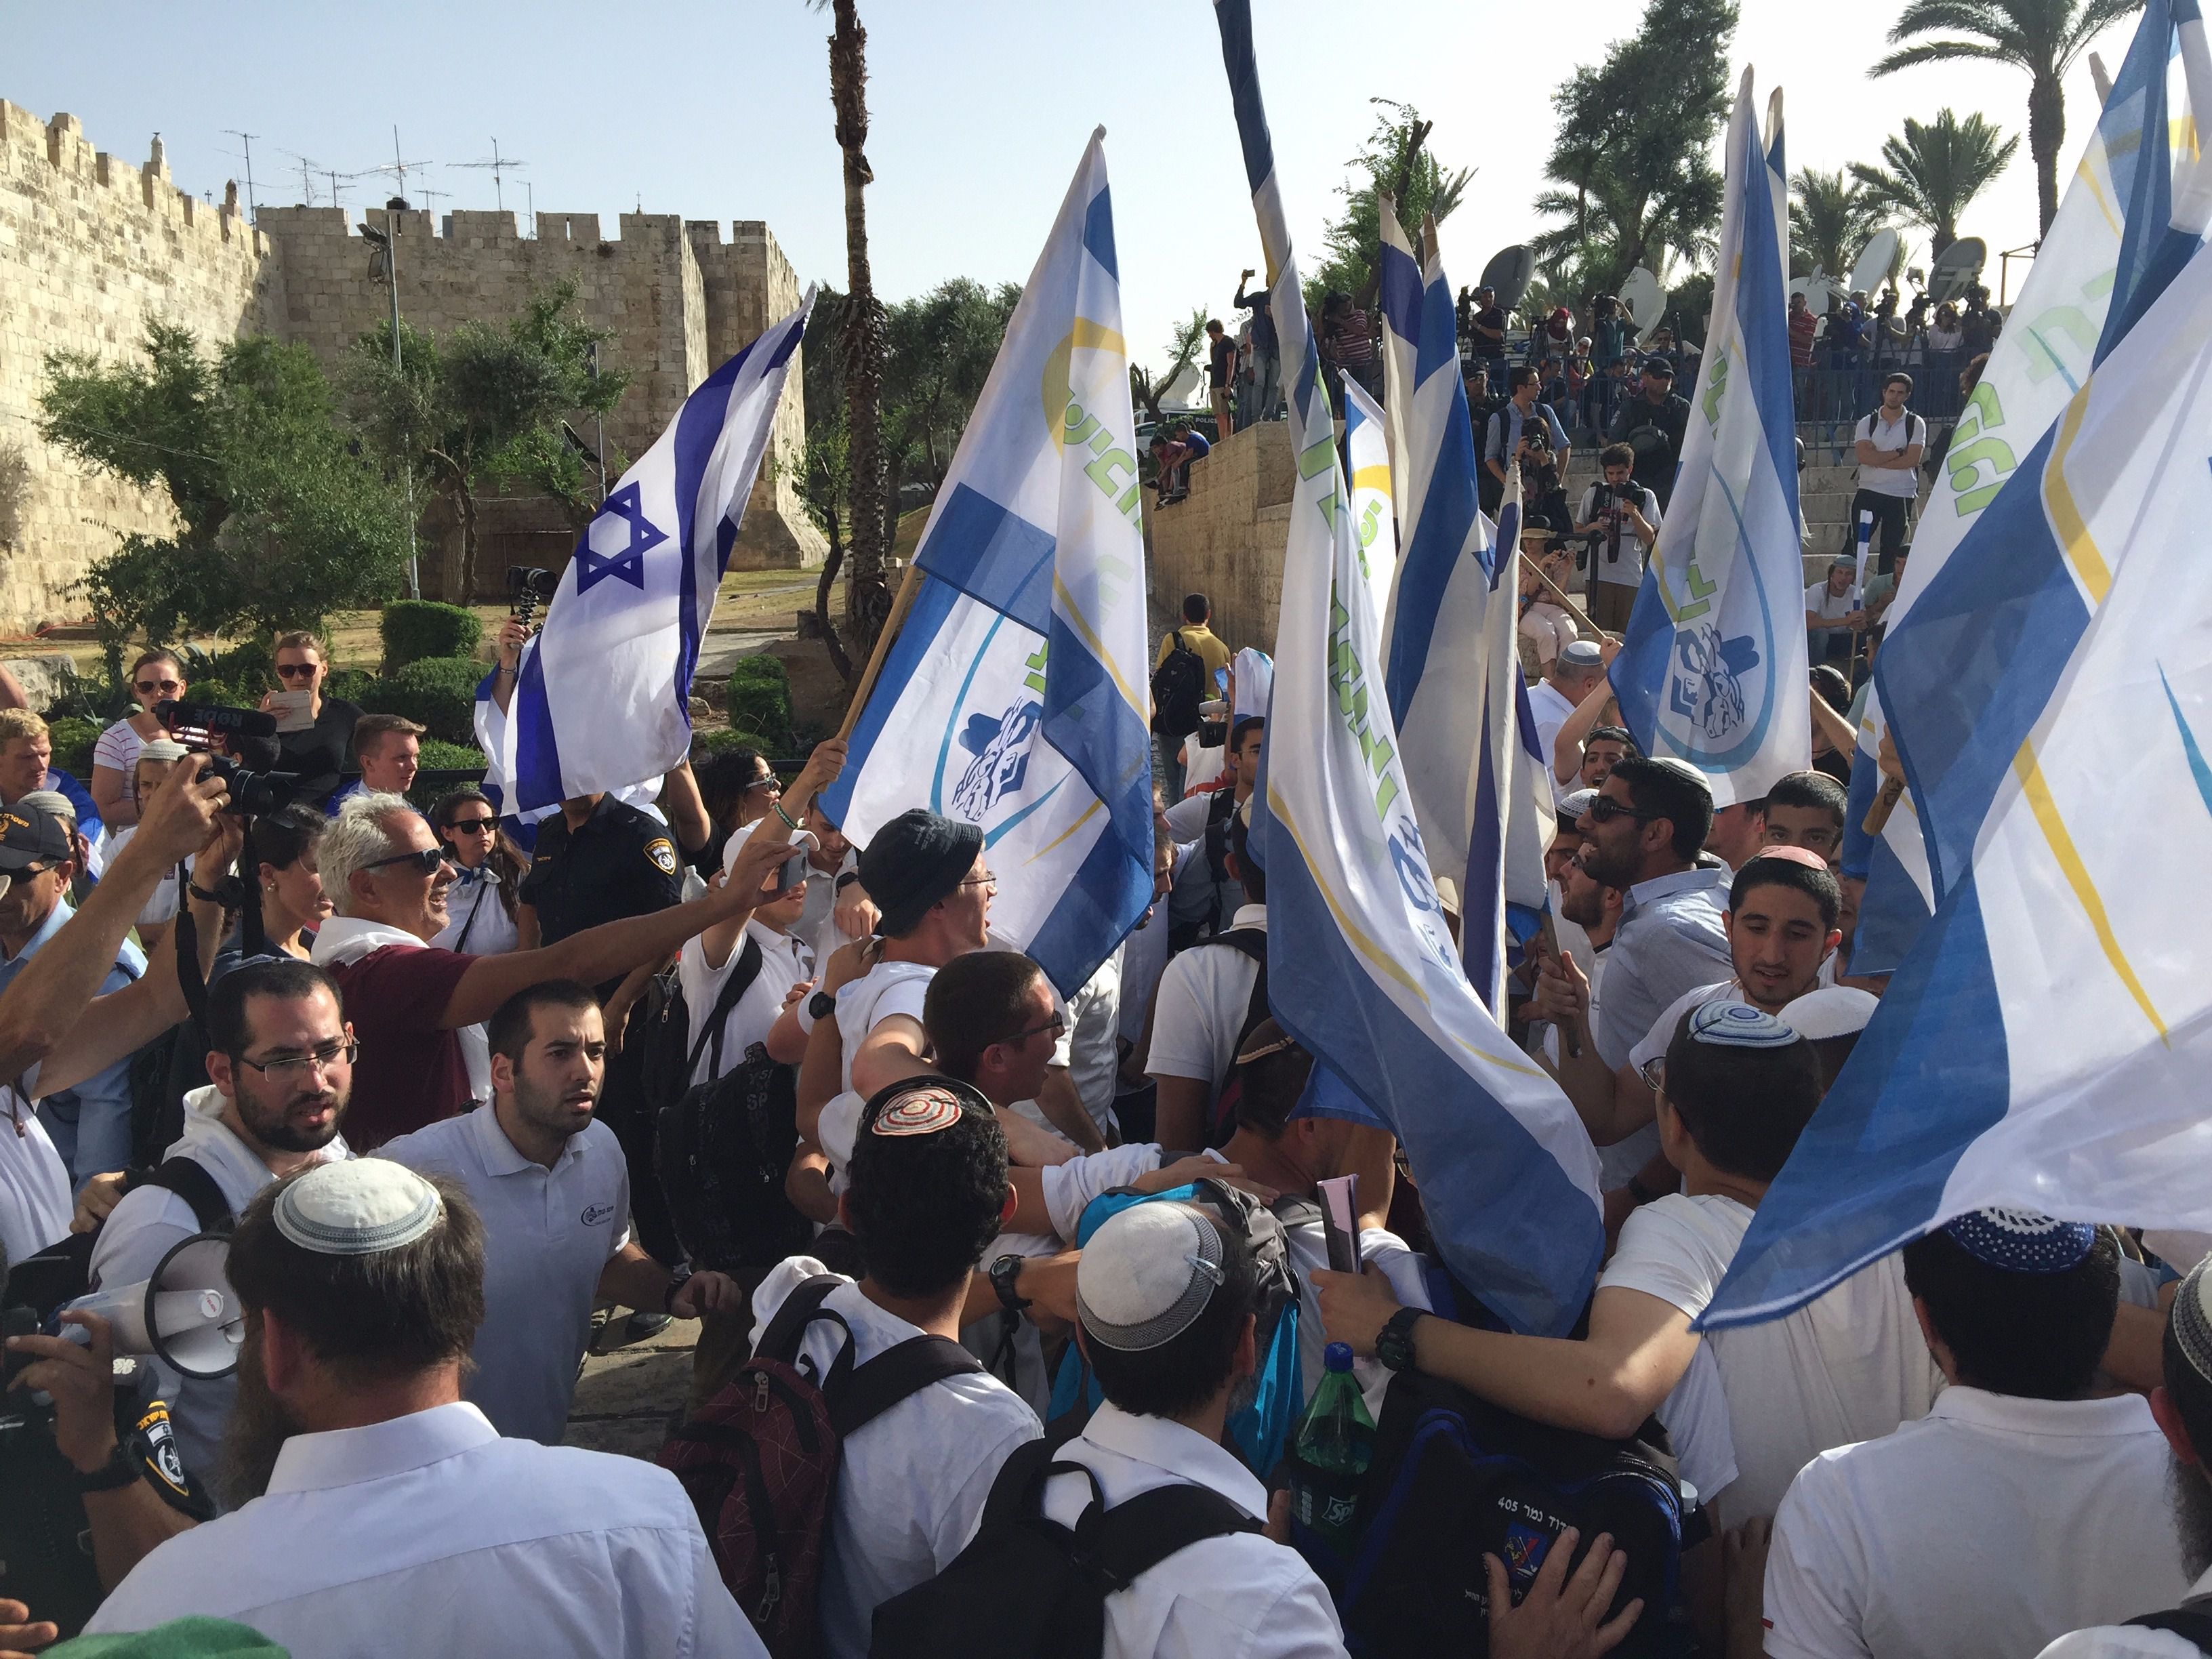 Orthodox teens get set to march with flags through Jerusalem's Old City, including its Arab quarters, on Jerusalem Day, Sunday.